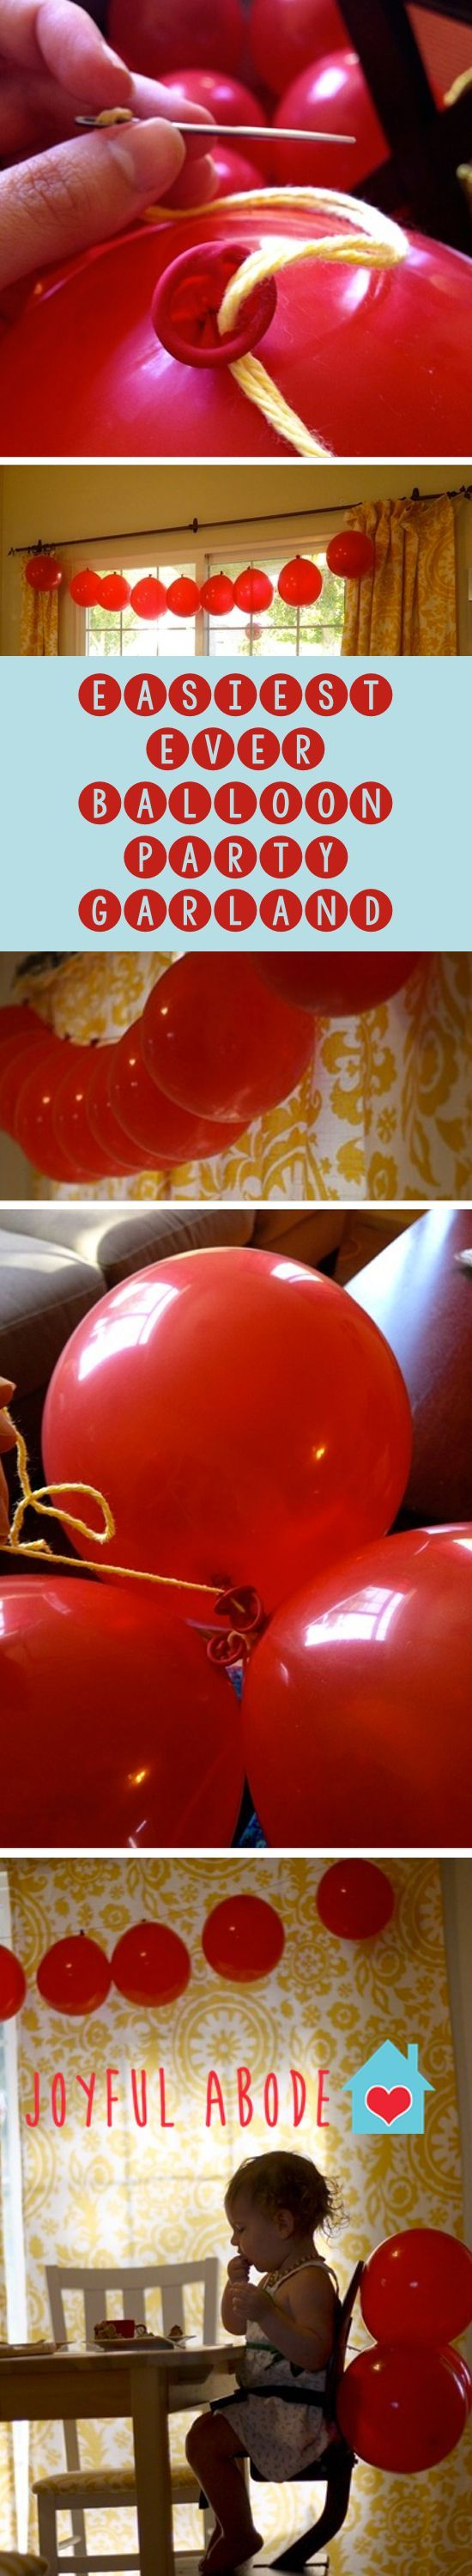 Easiest Ever Balloon Party Garland | Balloon party, Garlands and Decorating